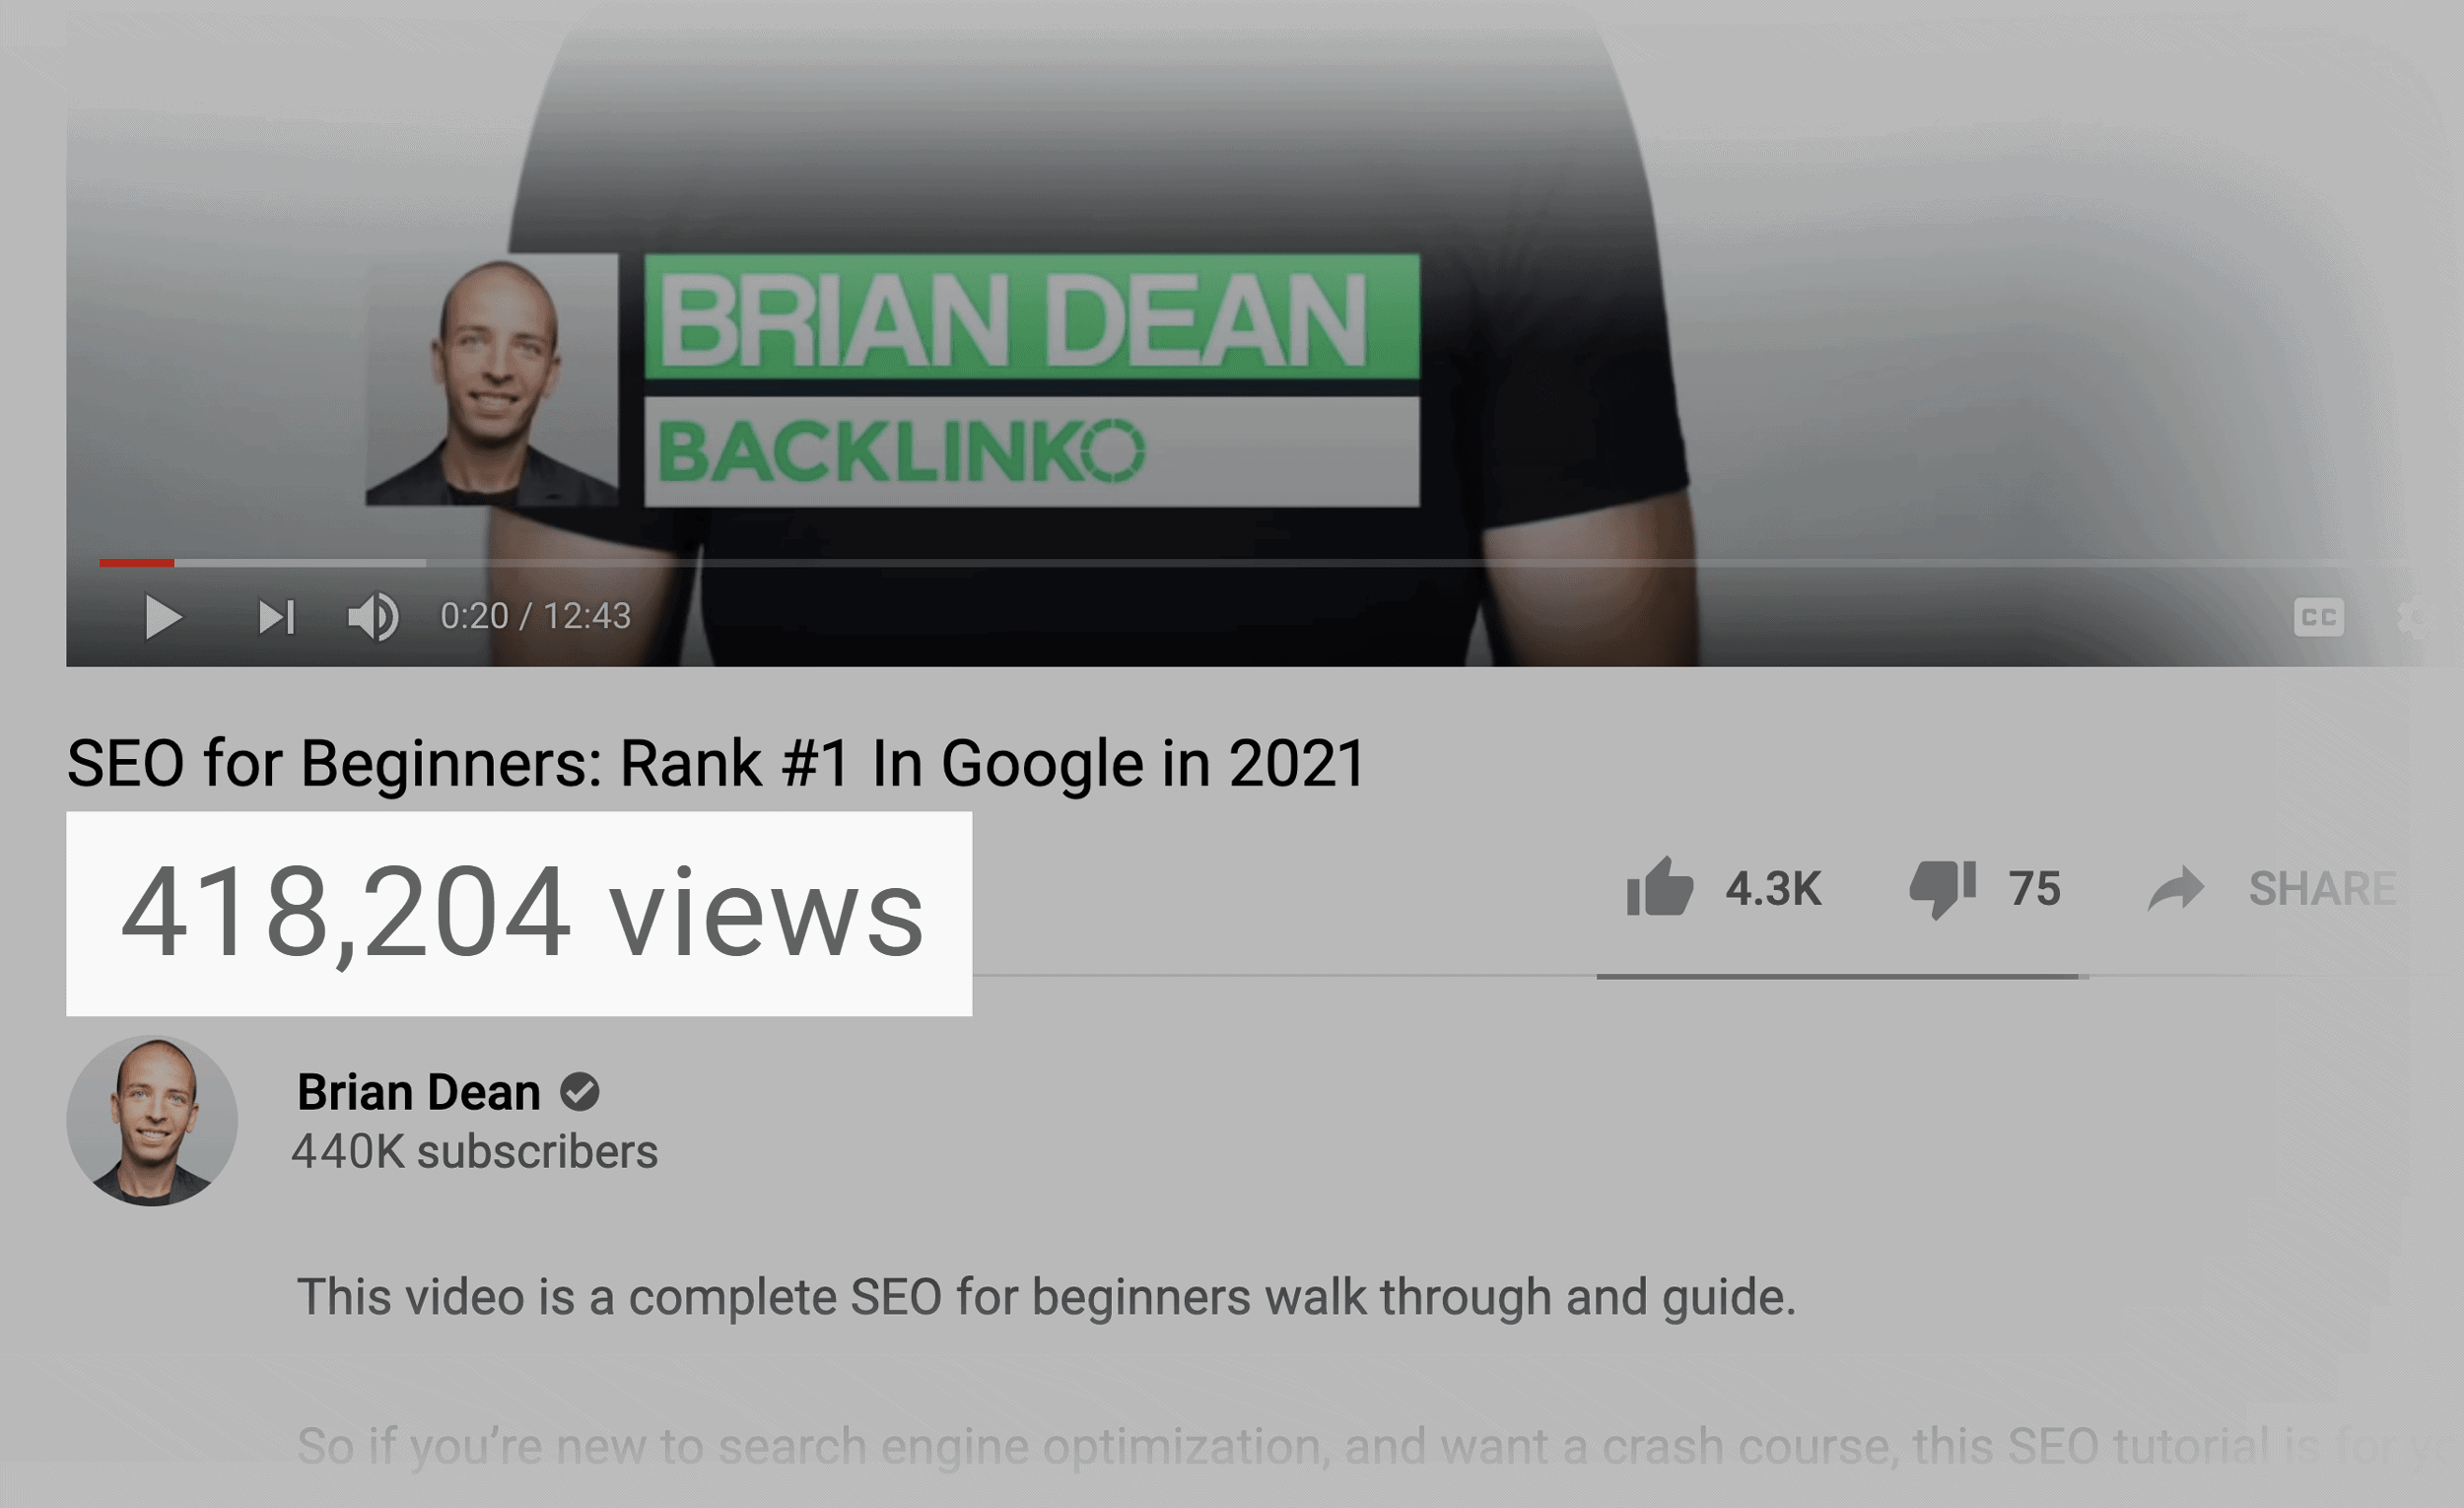 SEO for beginners YouTube video – View count